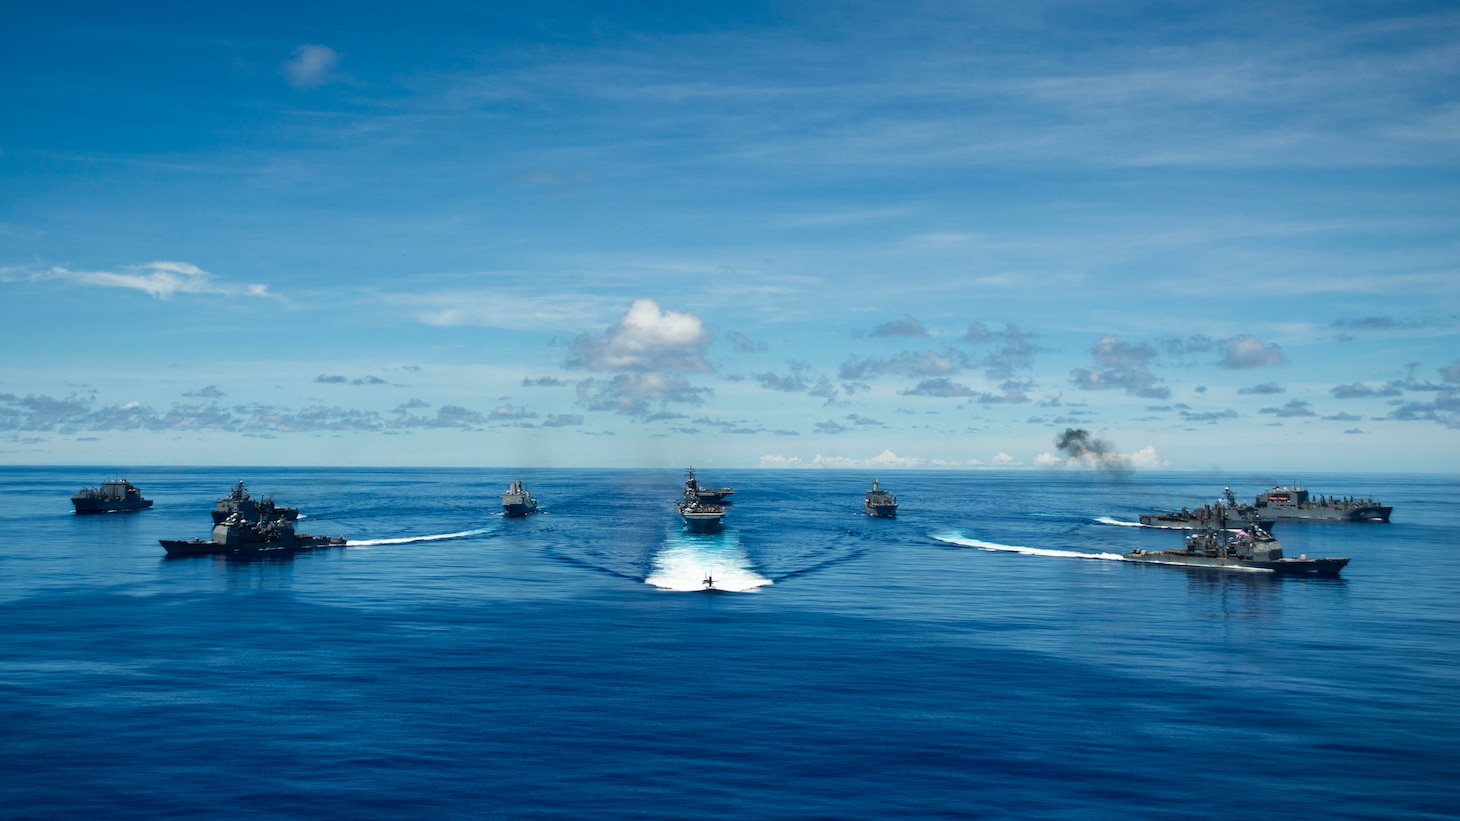 PHILIPPINE SEA (Sept. 25, 2020) From left, USNS Charles Drew (T-AKE 10), USS Comstock (LSD 45), USS Shiloh (CG 67), USS New Orleans (LPD 18), USS Chicago (SSN 721), USS America (LHA 6), USS Ronald Reagan (CVN 76), USNS John Ericsson (T-AO 194), USS Antietam (CG 54), USS Germantown (LSD 42), and USNS Sacagawea (T-AKE 2) steam in formation while E/A-18G Growlers and FA-18E Super Hornets from Carrier Air Wing (CVW) 5, a P-8 Poseidon from Commander Task Force 72, and U.S. Air Force F-22 Raptors and a B-1B Bomber fly over the formation in support of Valiant Shield 2020. Valiant Shield is a U.S. only, biennial field training exercise (FTX) with a focus on integration of joint training in a blue-water environment among U.S. forces. This training enables real-world proficiency in sustaining joint forces through detecting, locating, tracking and engaging units at sea, in the air, on land and in cyberspace in response to a range of mission areas. (U.S. Navy photo by Mass Communication Specialist 2nd Class Codie Soule)